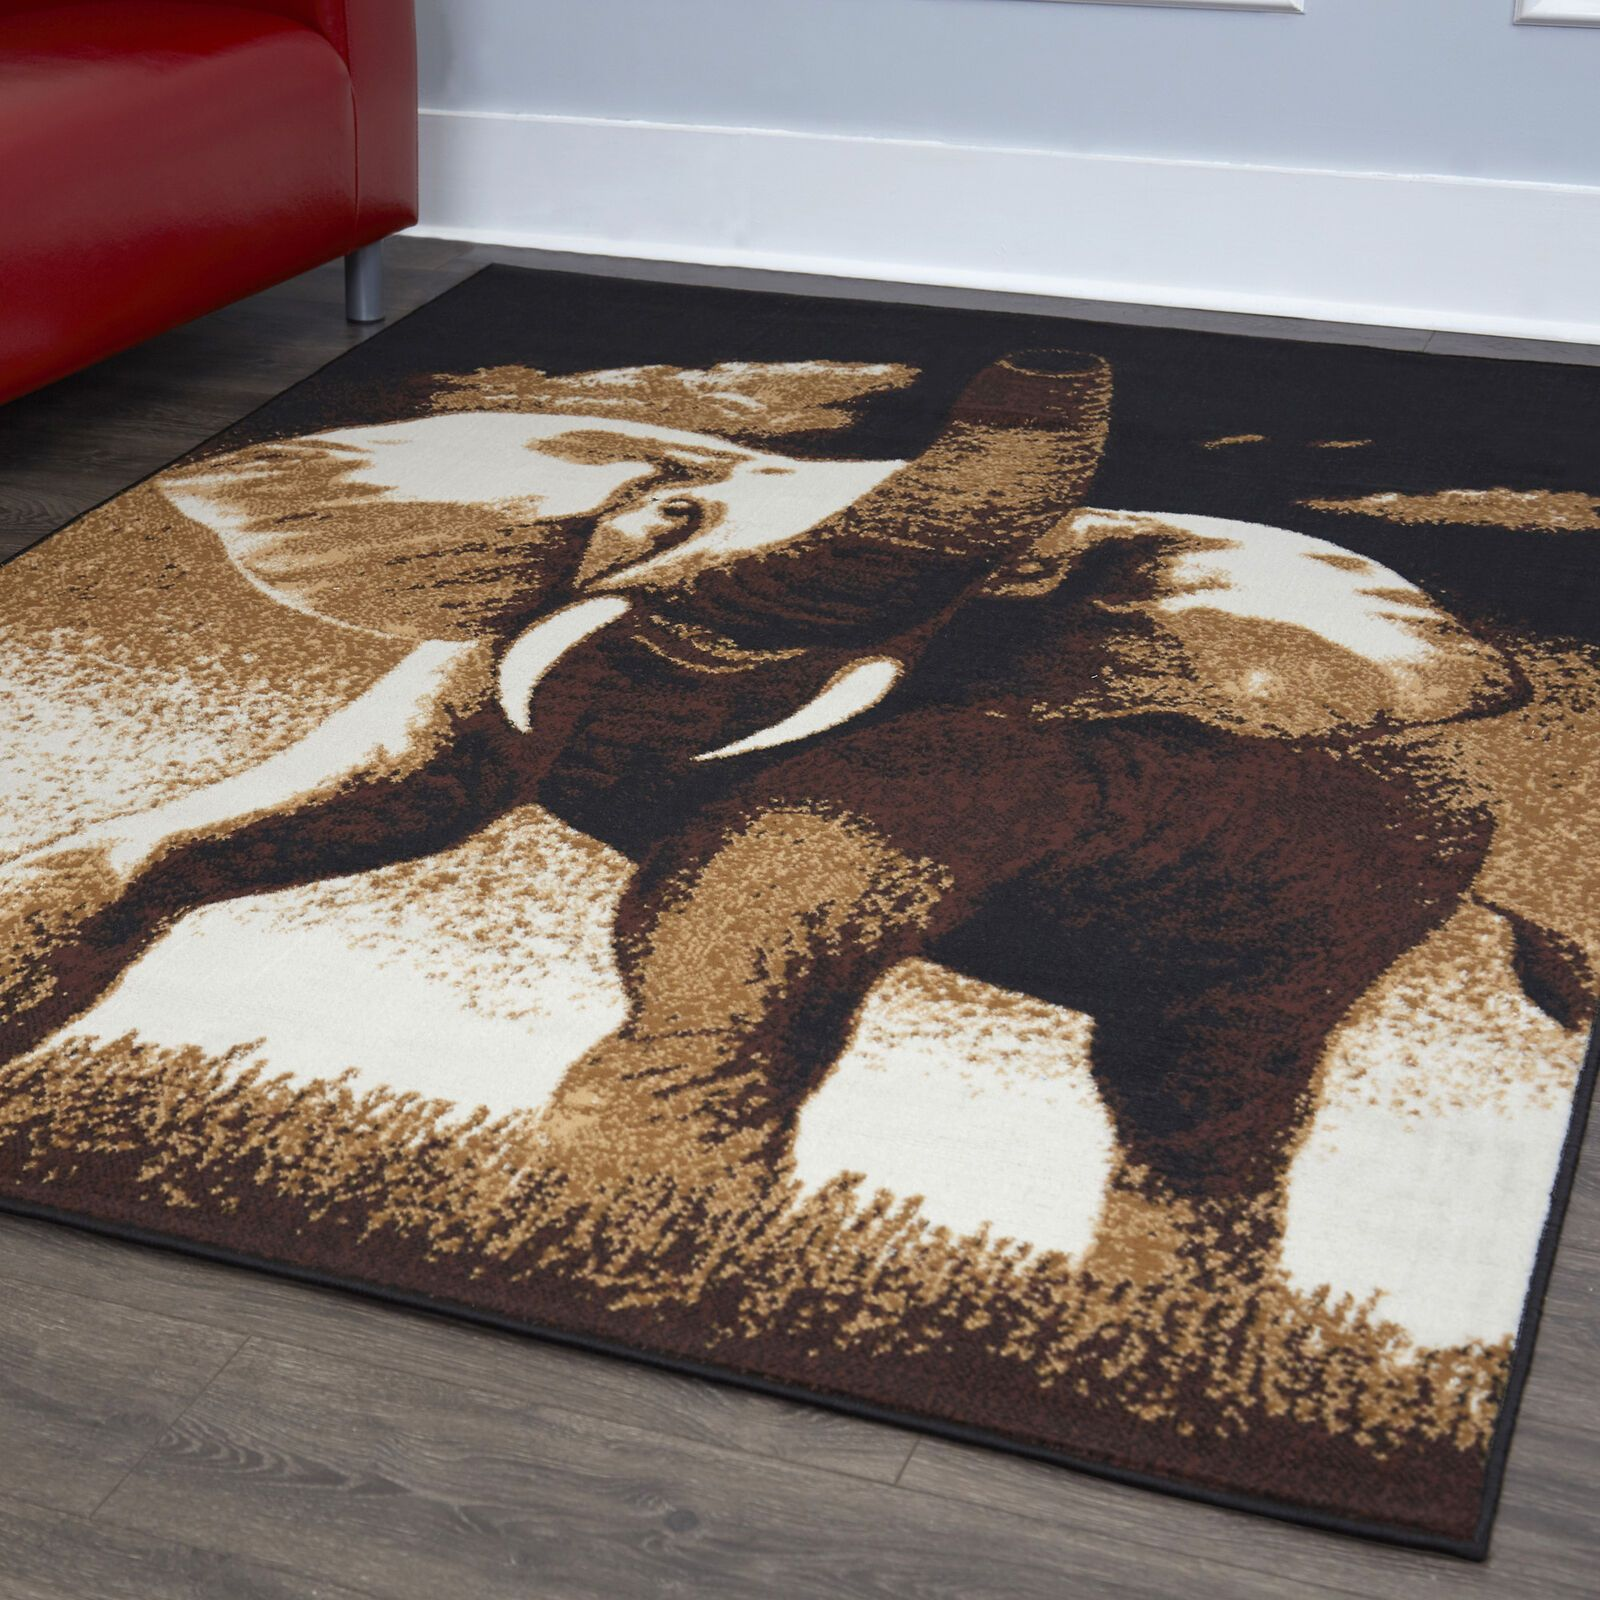 Details about Bold African Elephant Tusks Area Rug Modern